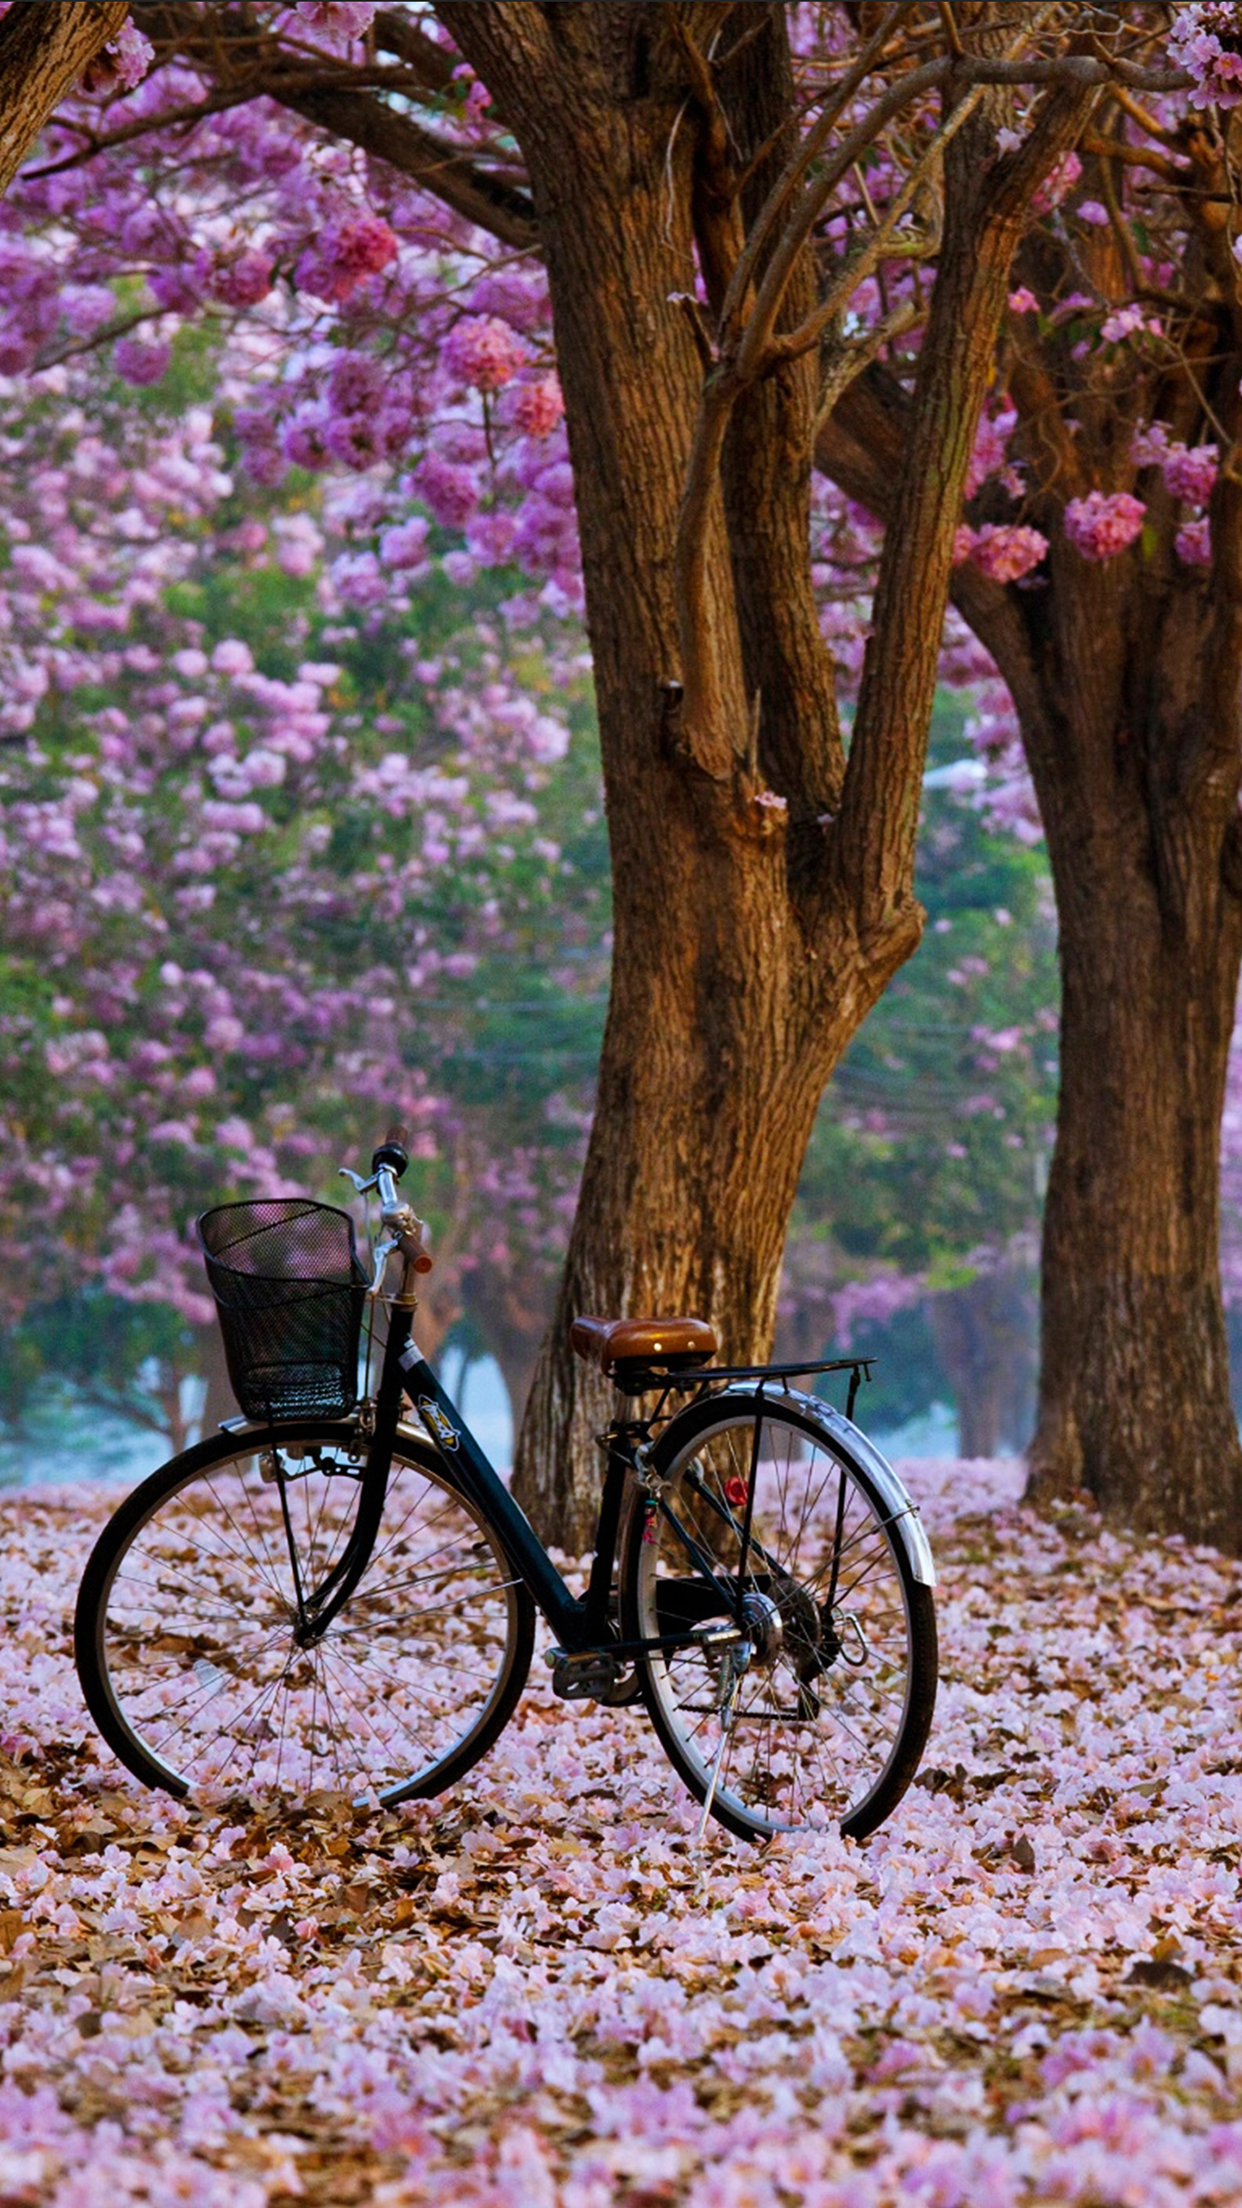 Fall Wallpaper Iphone 7 Plus Spring Bike Wallpaper For Iphone X 8 7 6 Free